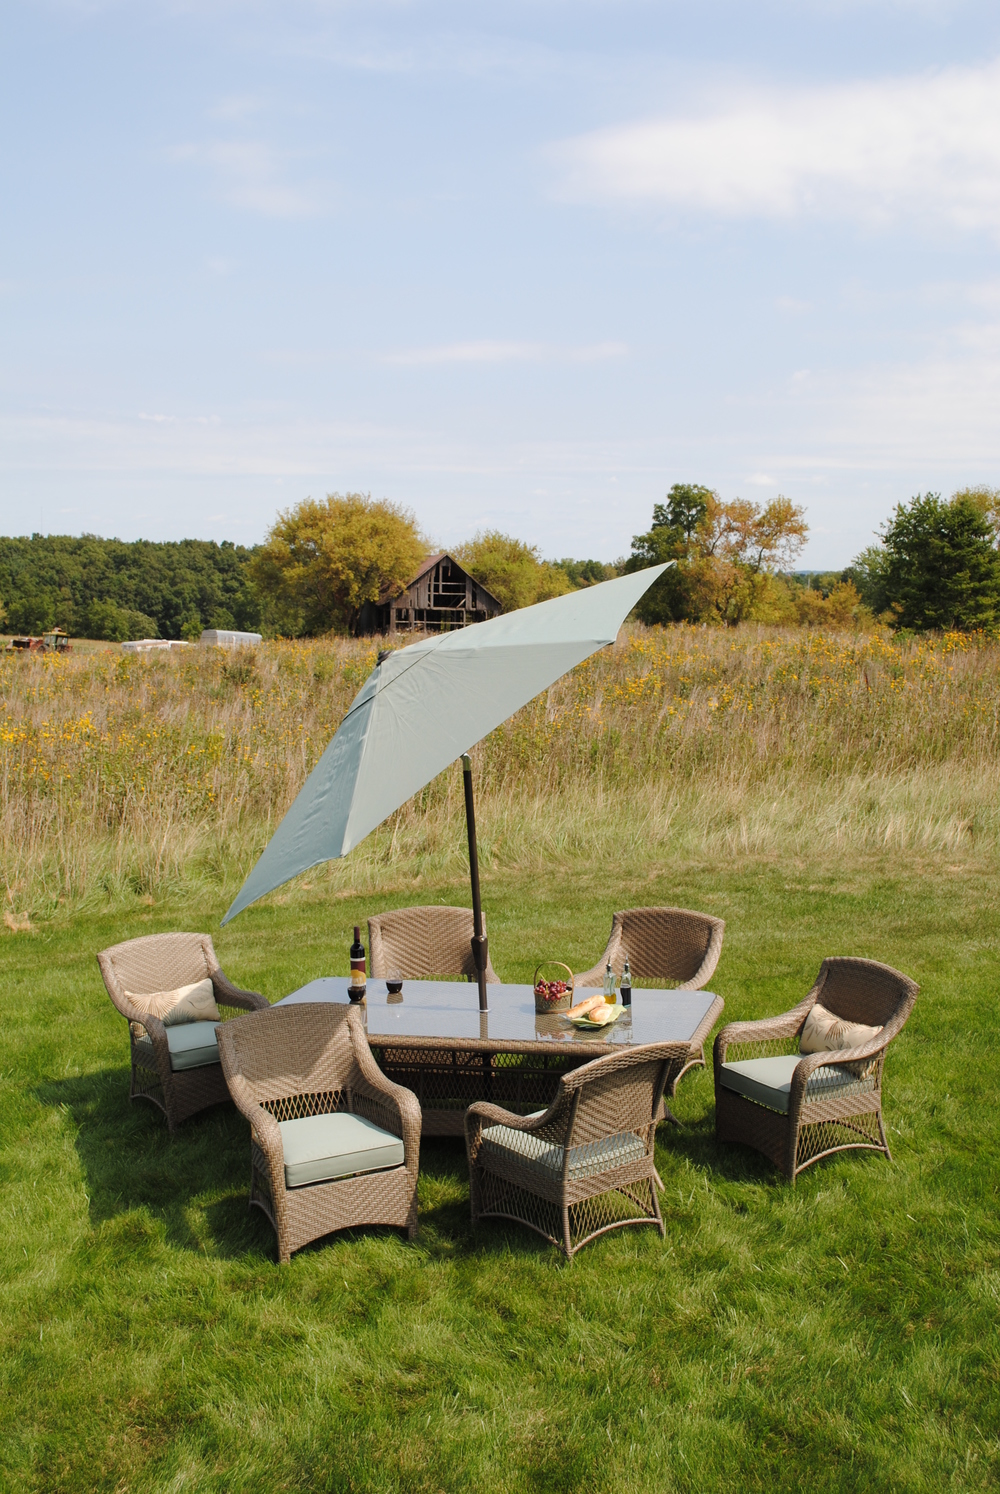 Madison U0026 South Central Wisconsinu0027s Source For High Quality Patio Furniture.